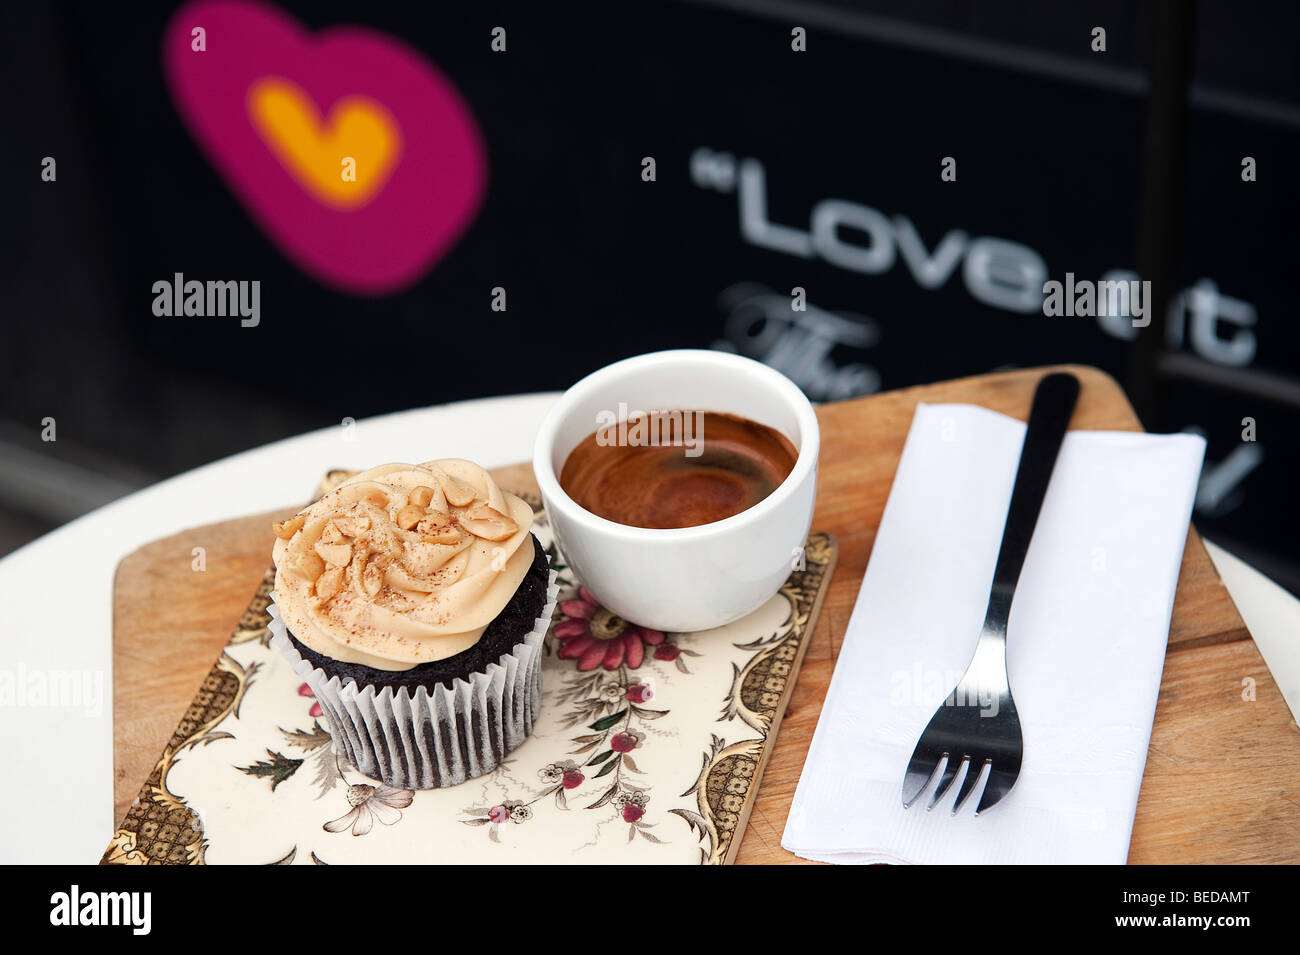 A peanut butter Cup cake and espresso coffee in Heart Buchanan deli and cafe on Byres Road in the West End of Glasgow, - Stock Image